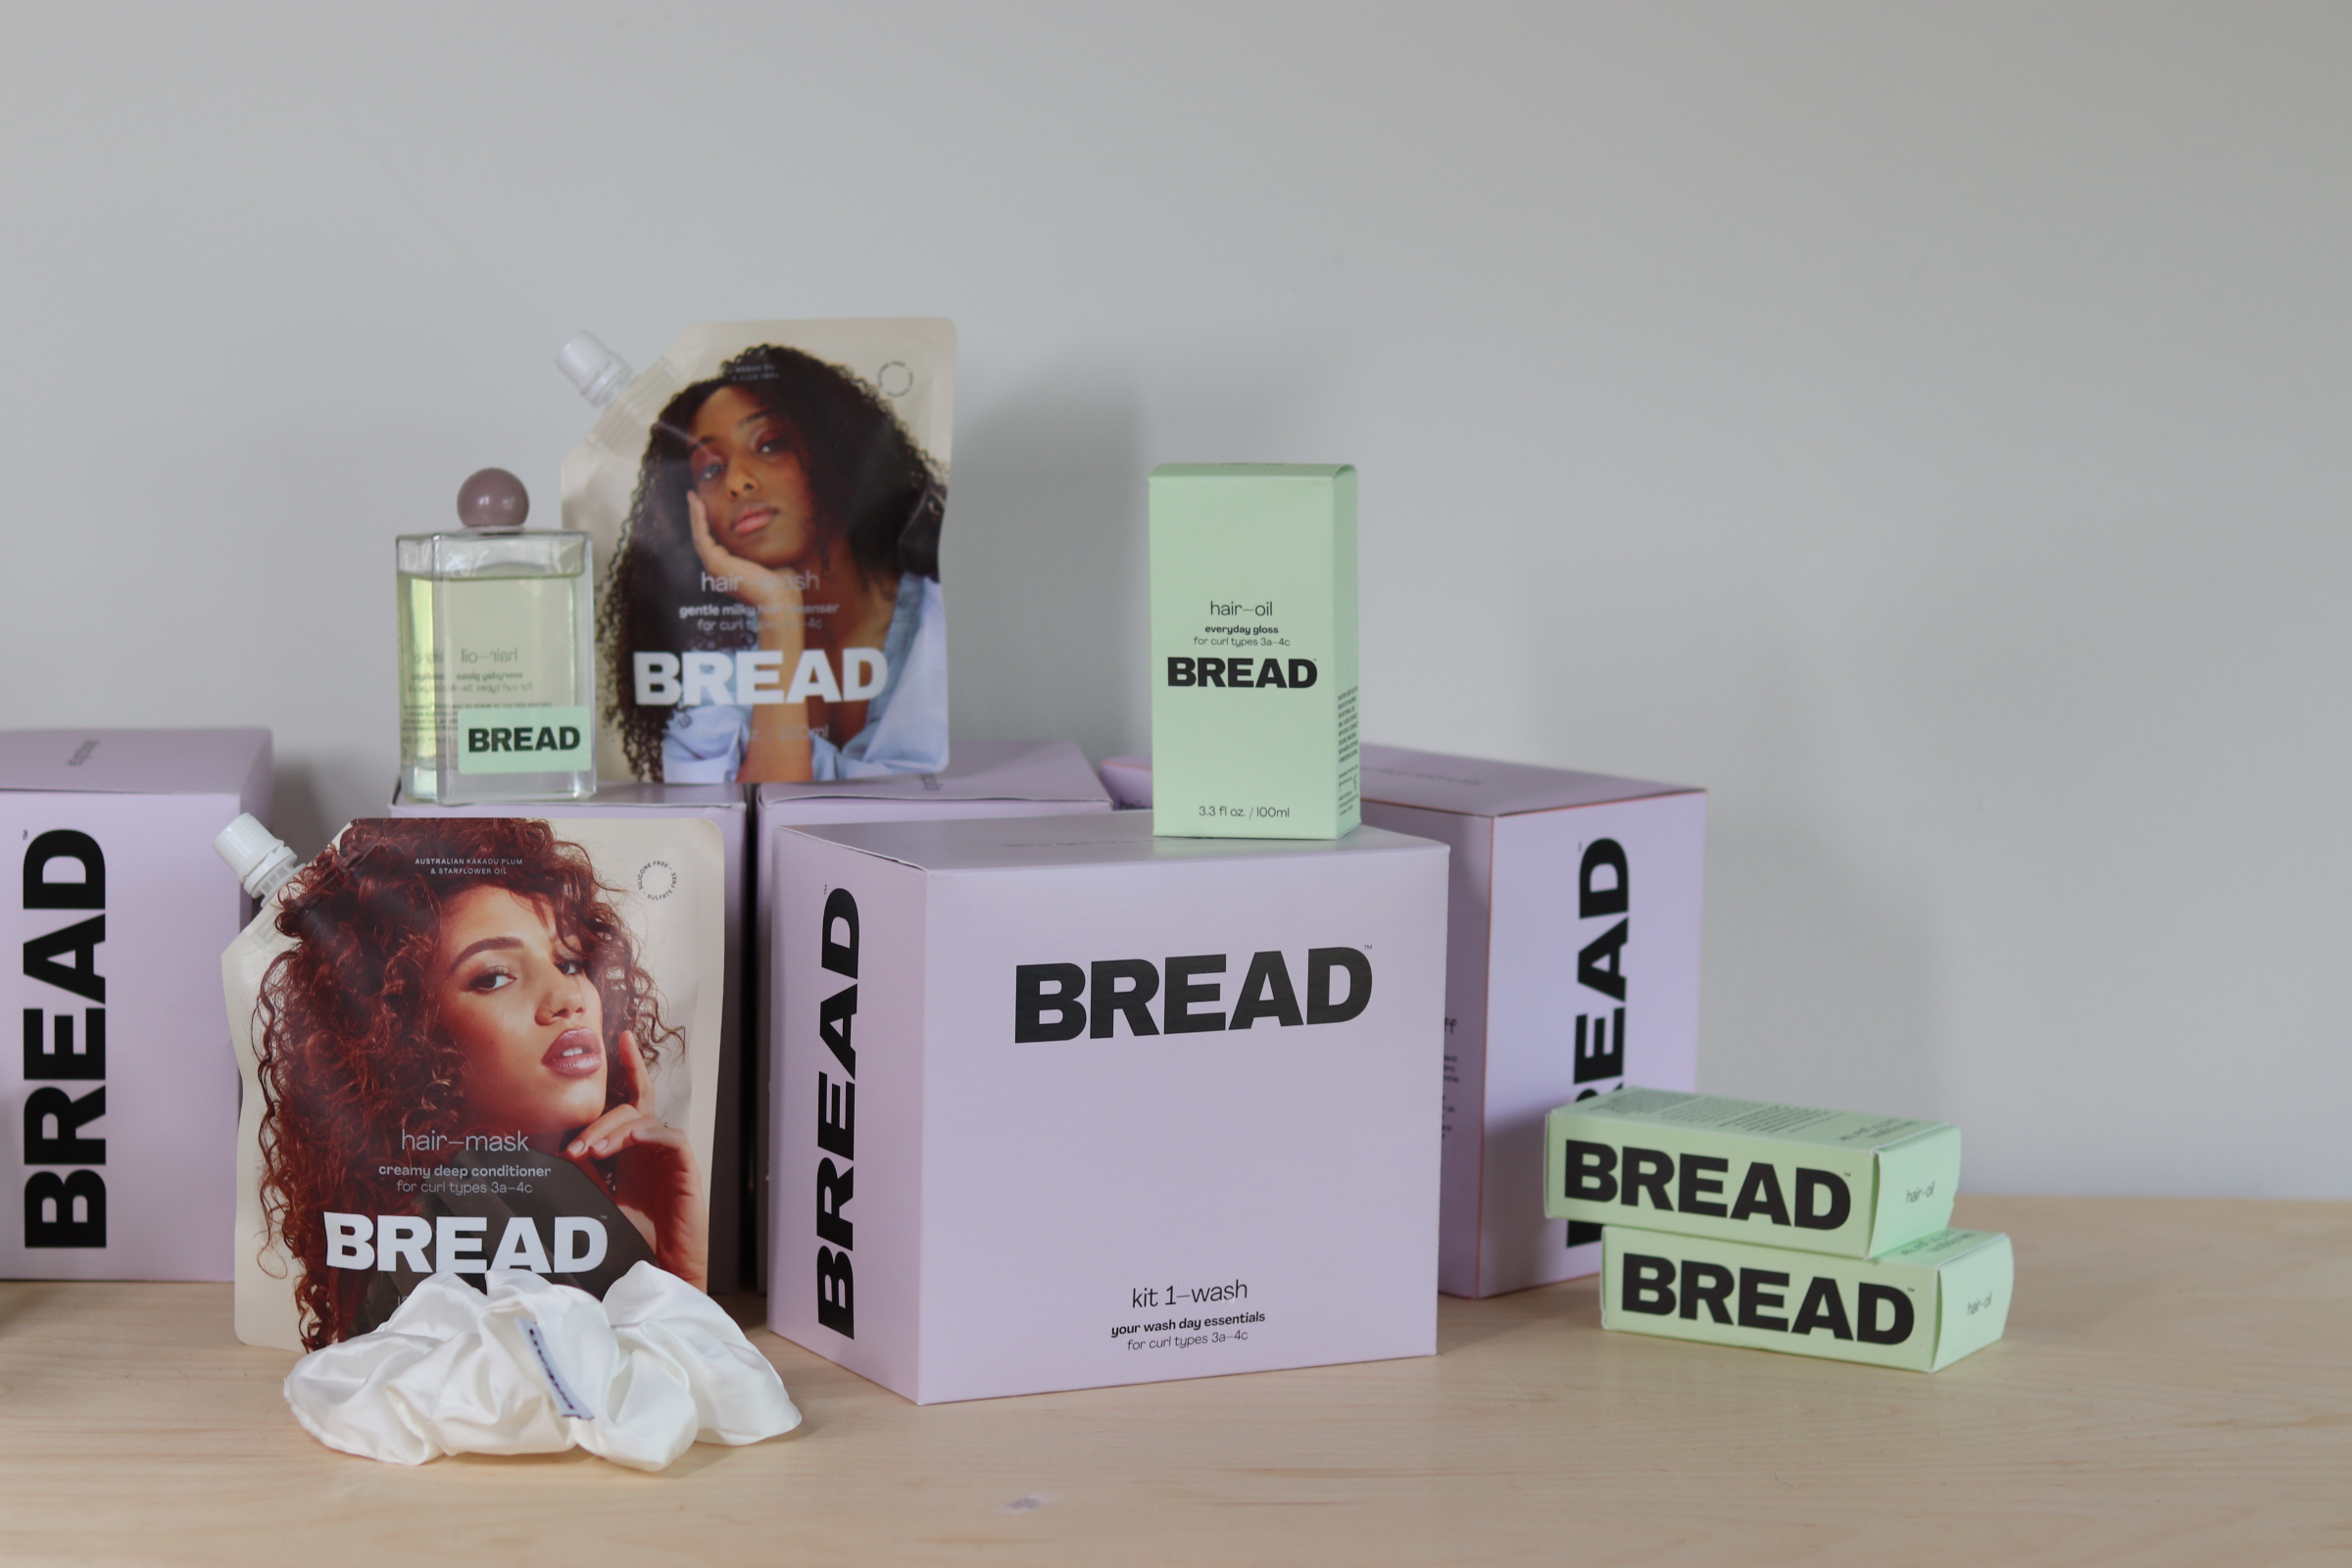 Enter To Win Incredible Hair Products With Our BREAD x STYLECASTER Giveaway!